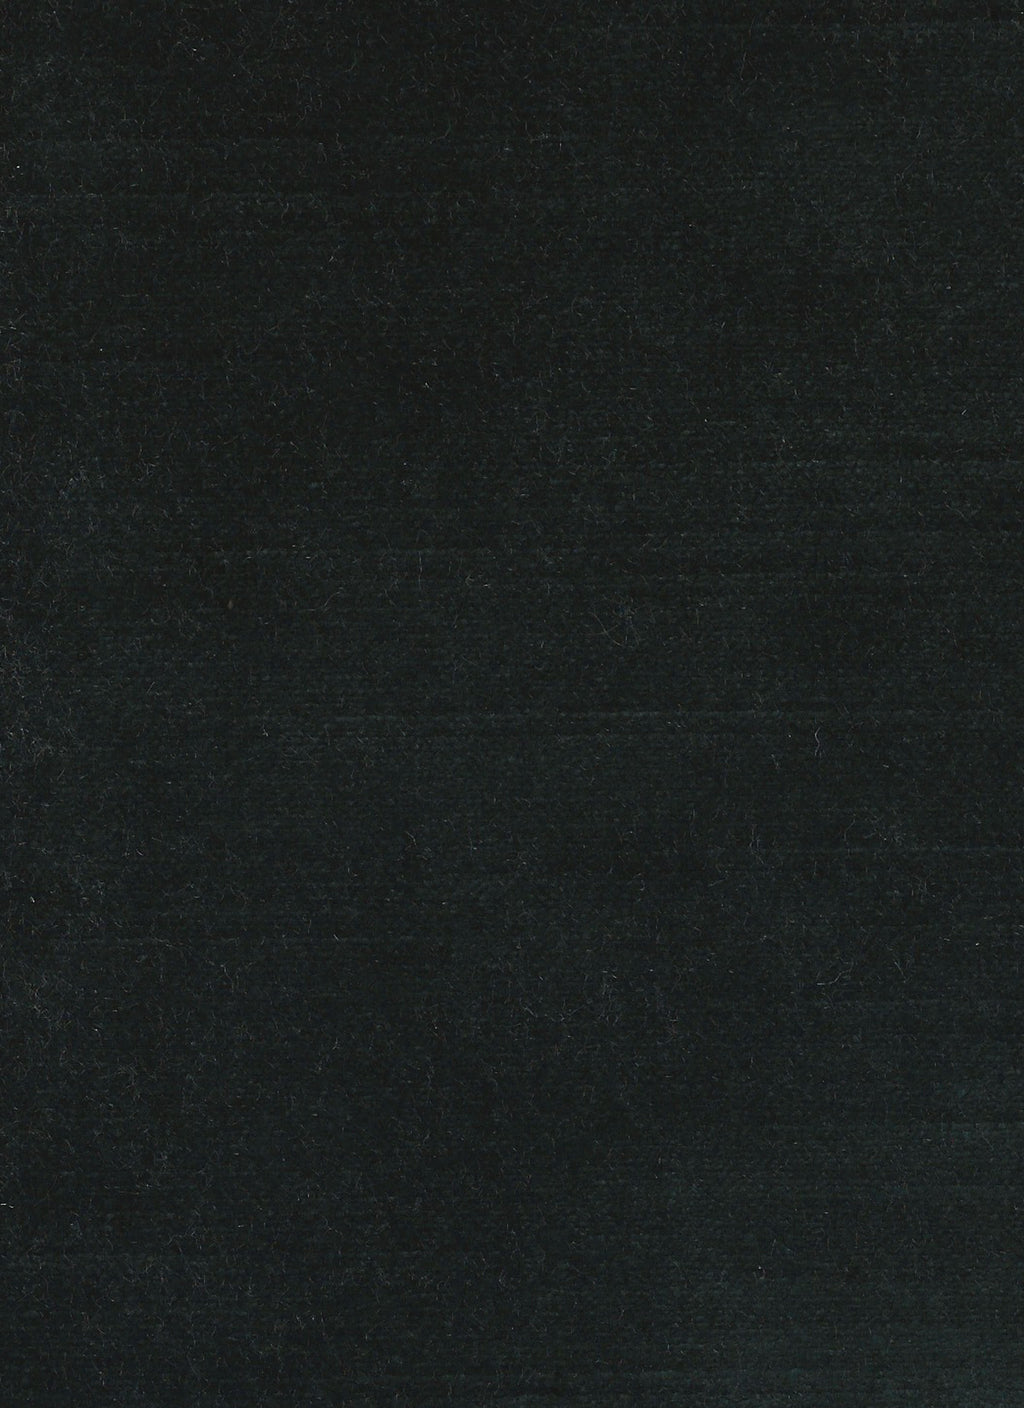 Brussels CL Black Velvet Upholstery Fabric